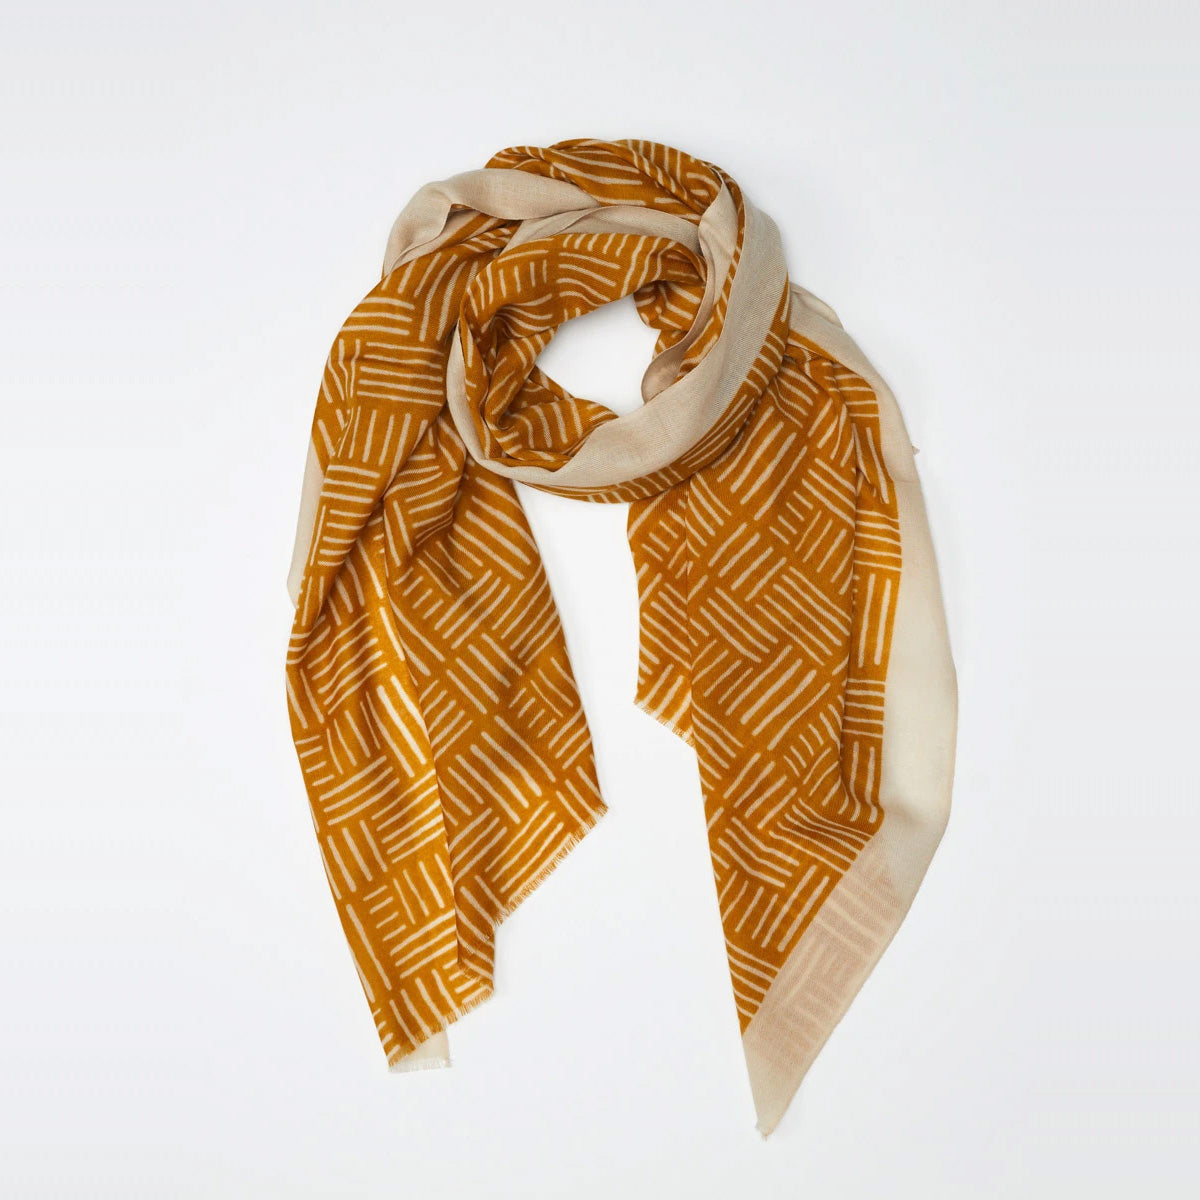 Lyon - 100% Fine Merino Wool Scarf - Saffron Yellow & Beige - Sold by Chic & Basta